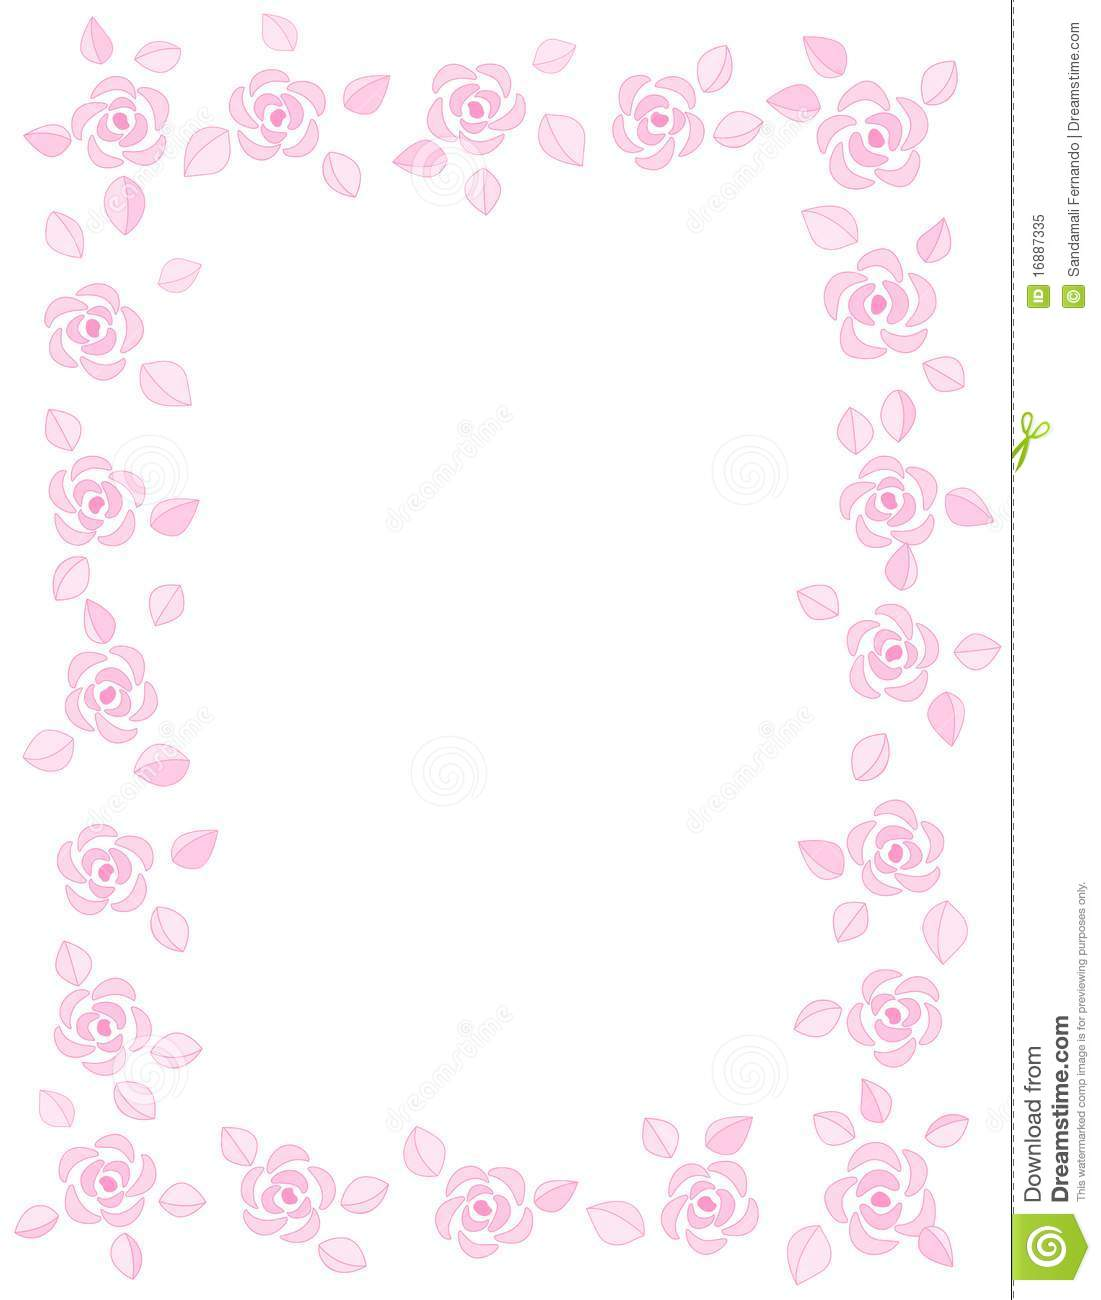 Rose Border / Wedding Invitation Stock Vector - Image: 16887335